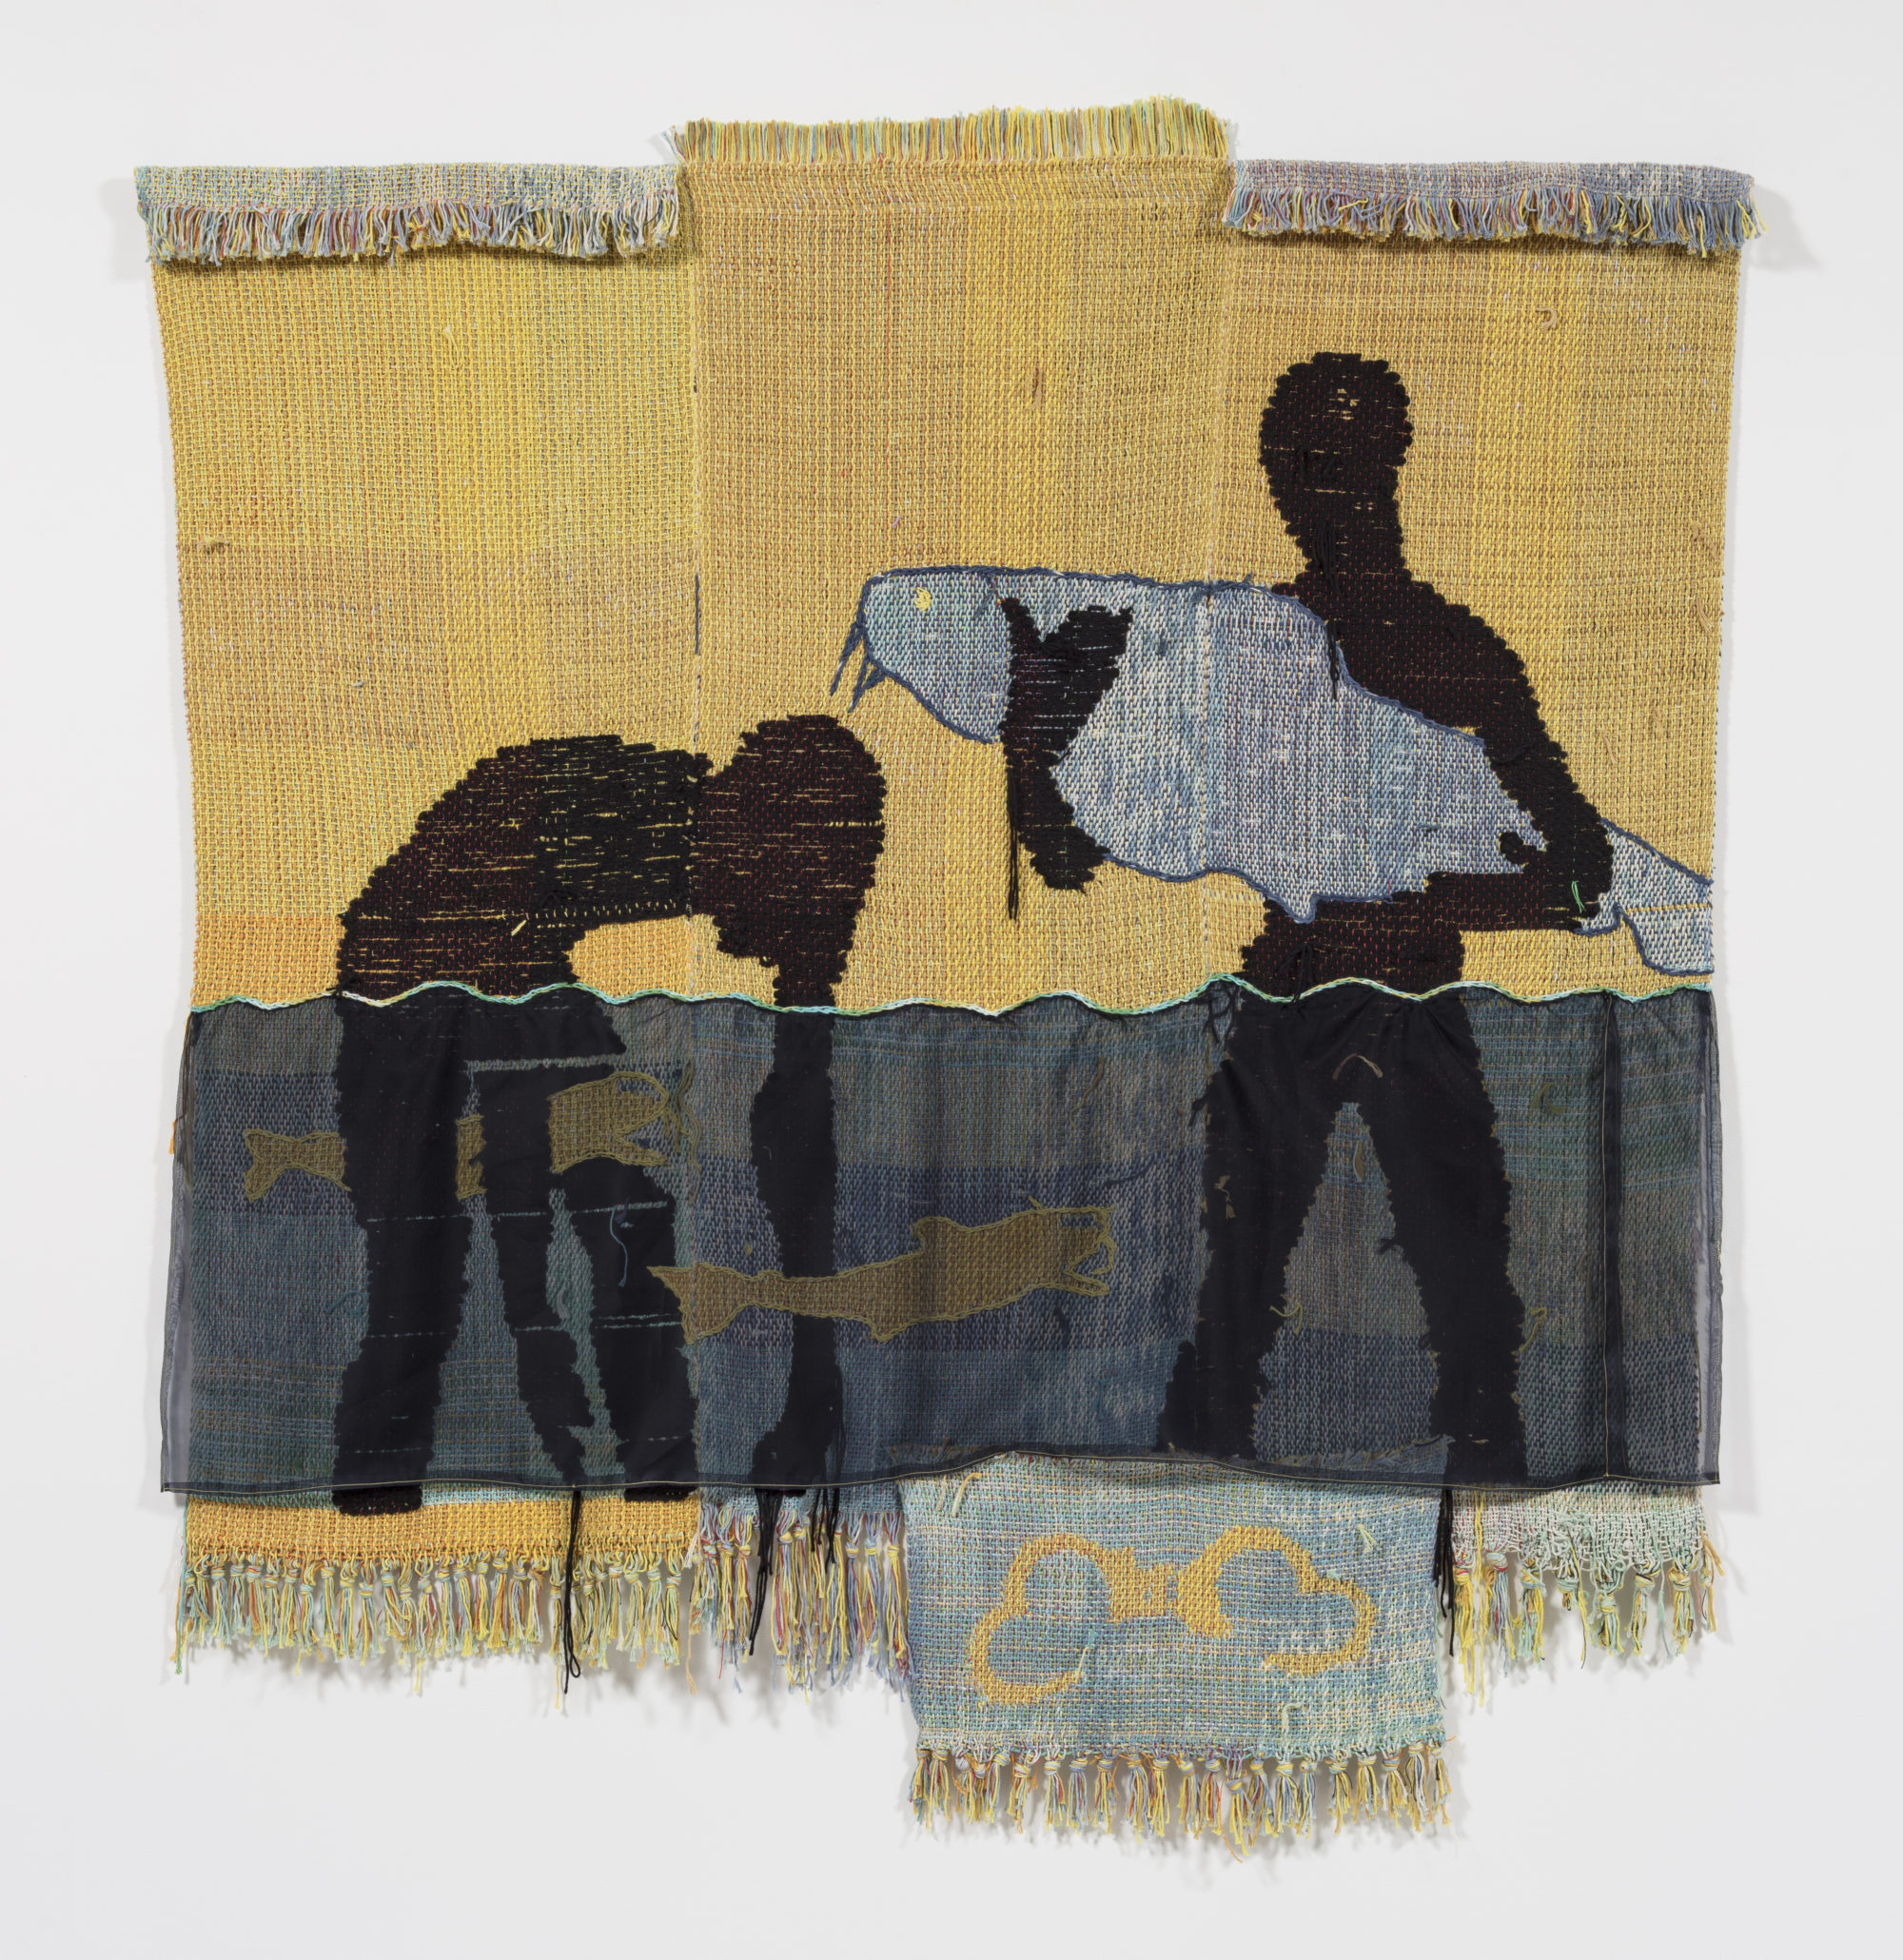 """woven cotton and acrylic yarn and silk organza by Diedrick Brackens titled """"bitter attendance, drown jubilee"""""""